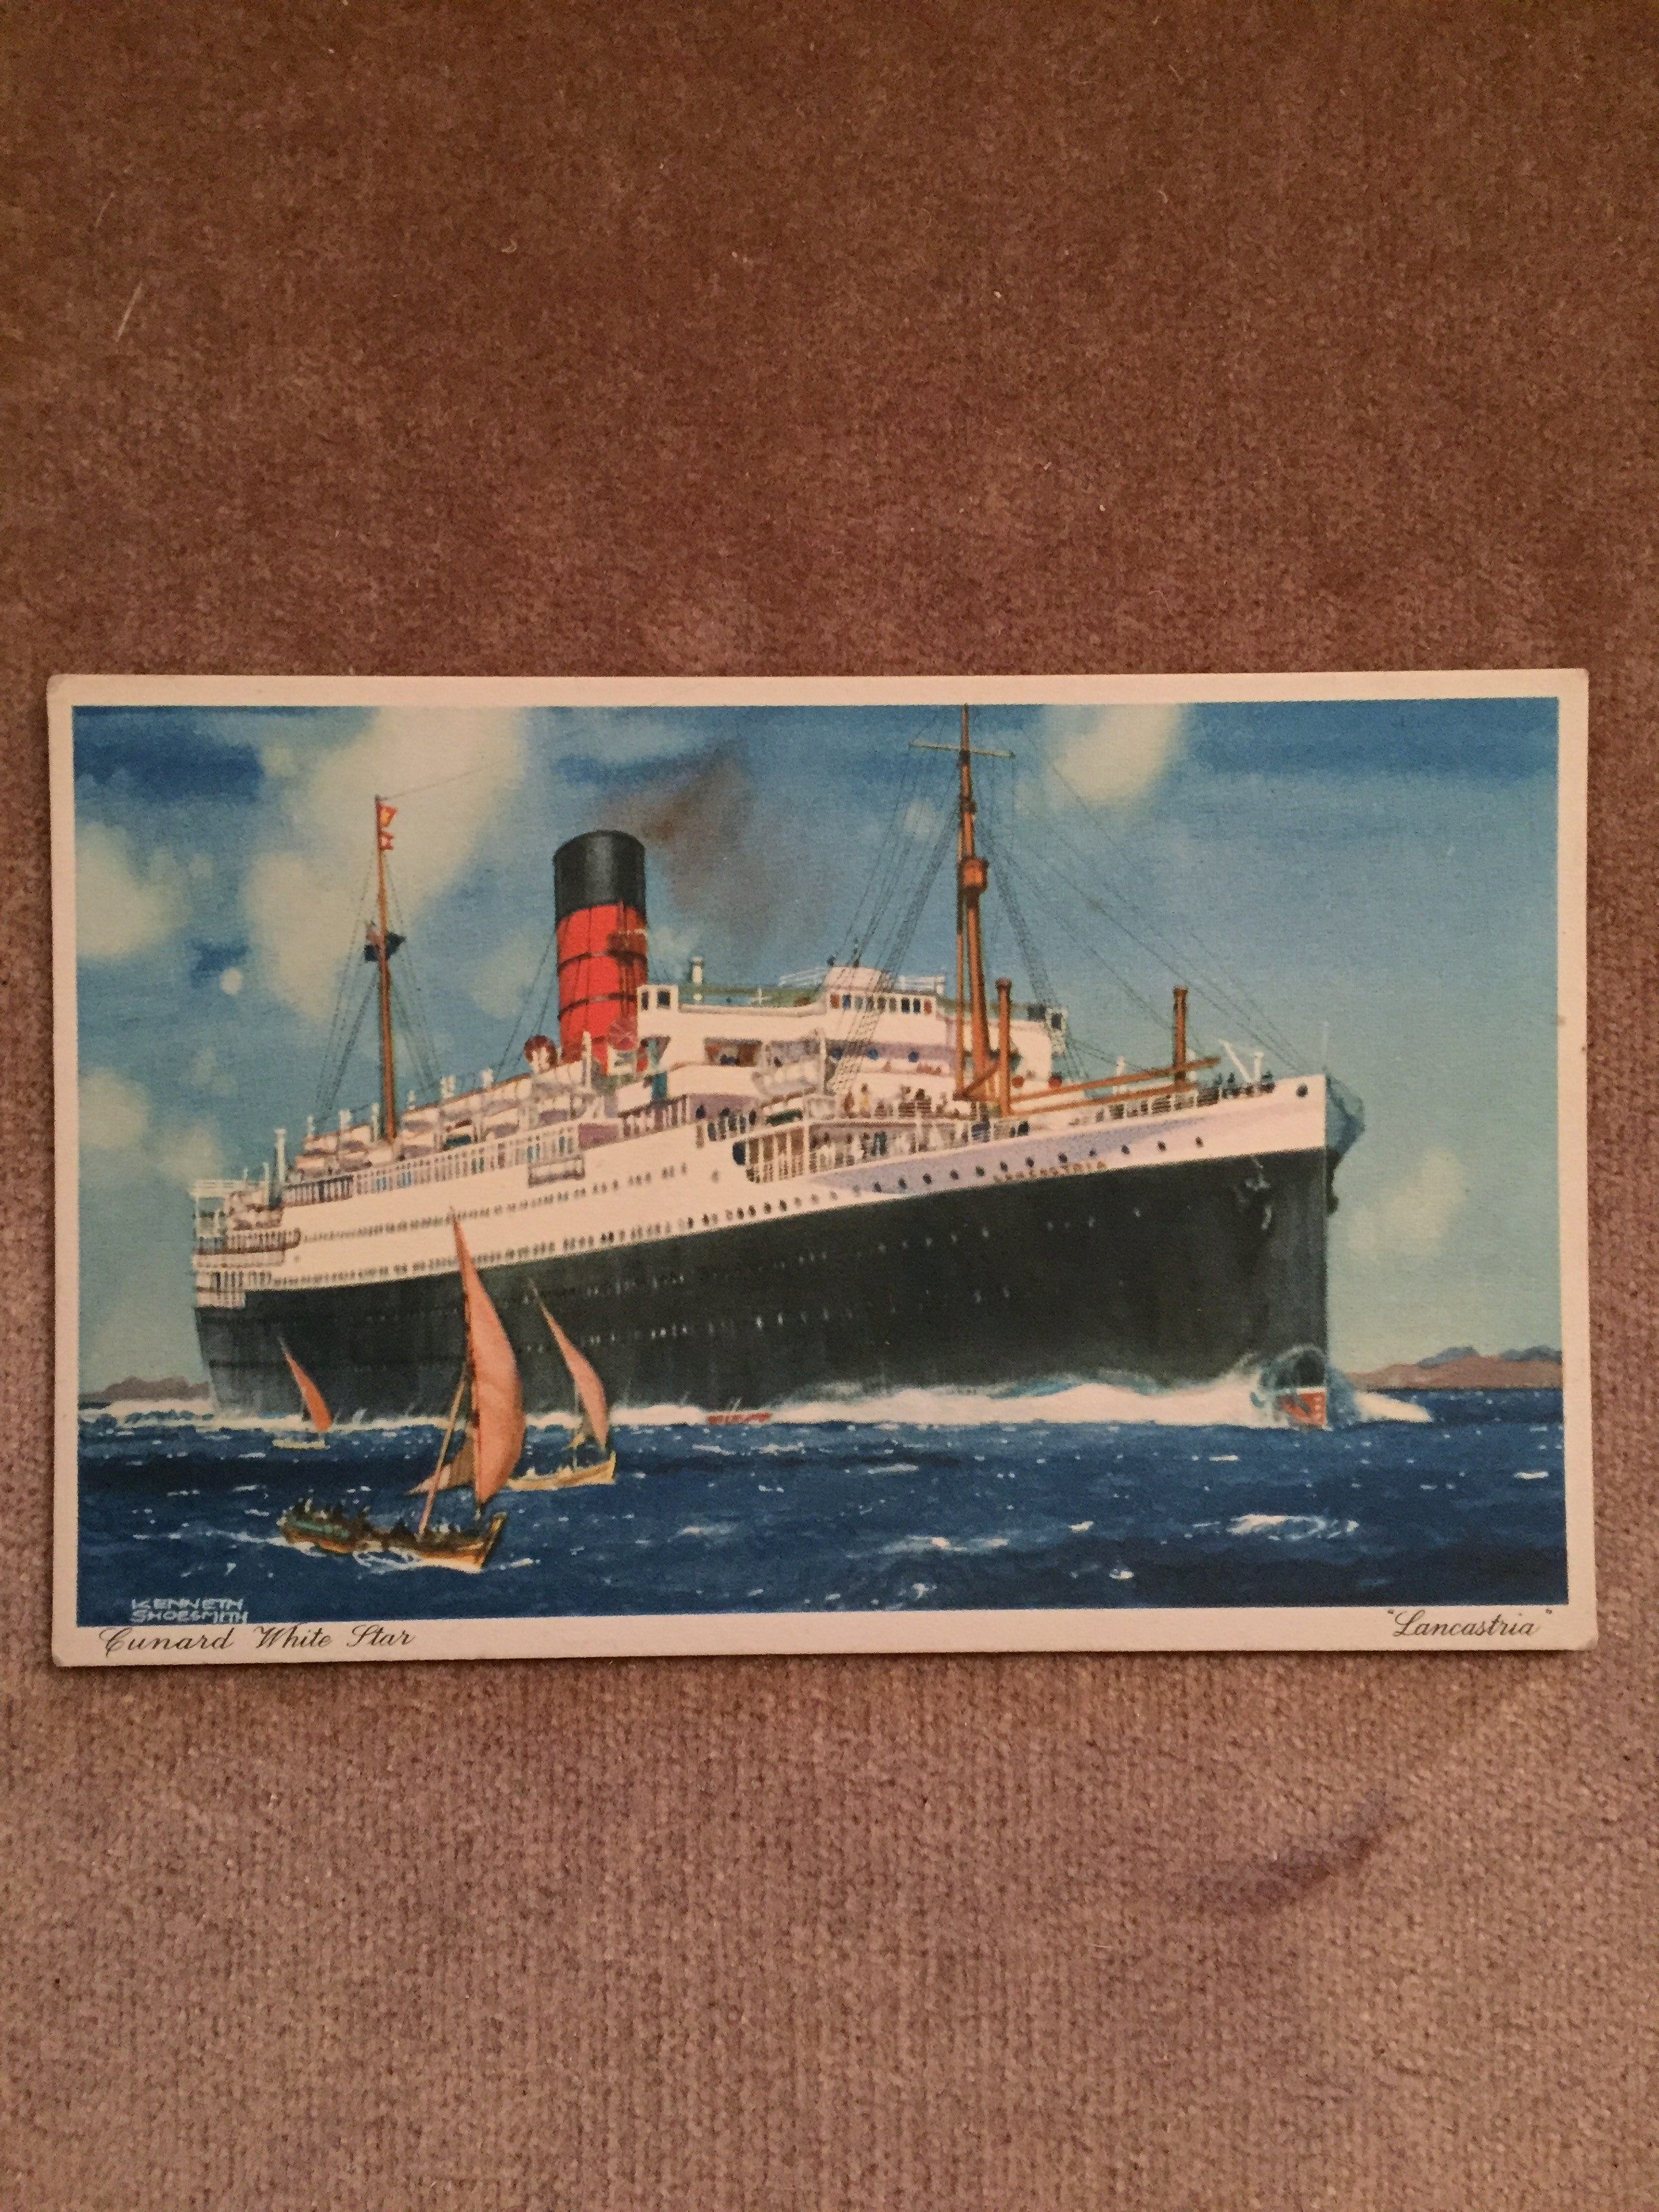 UNUSED COLOUR POSTCARD FROM THE OLD STEAMSHIP VESSEL LANCASTRIA